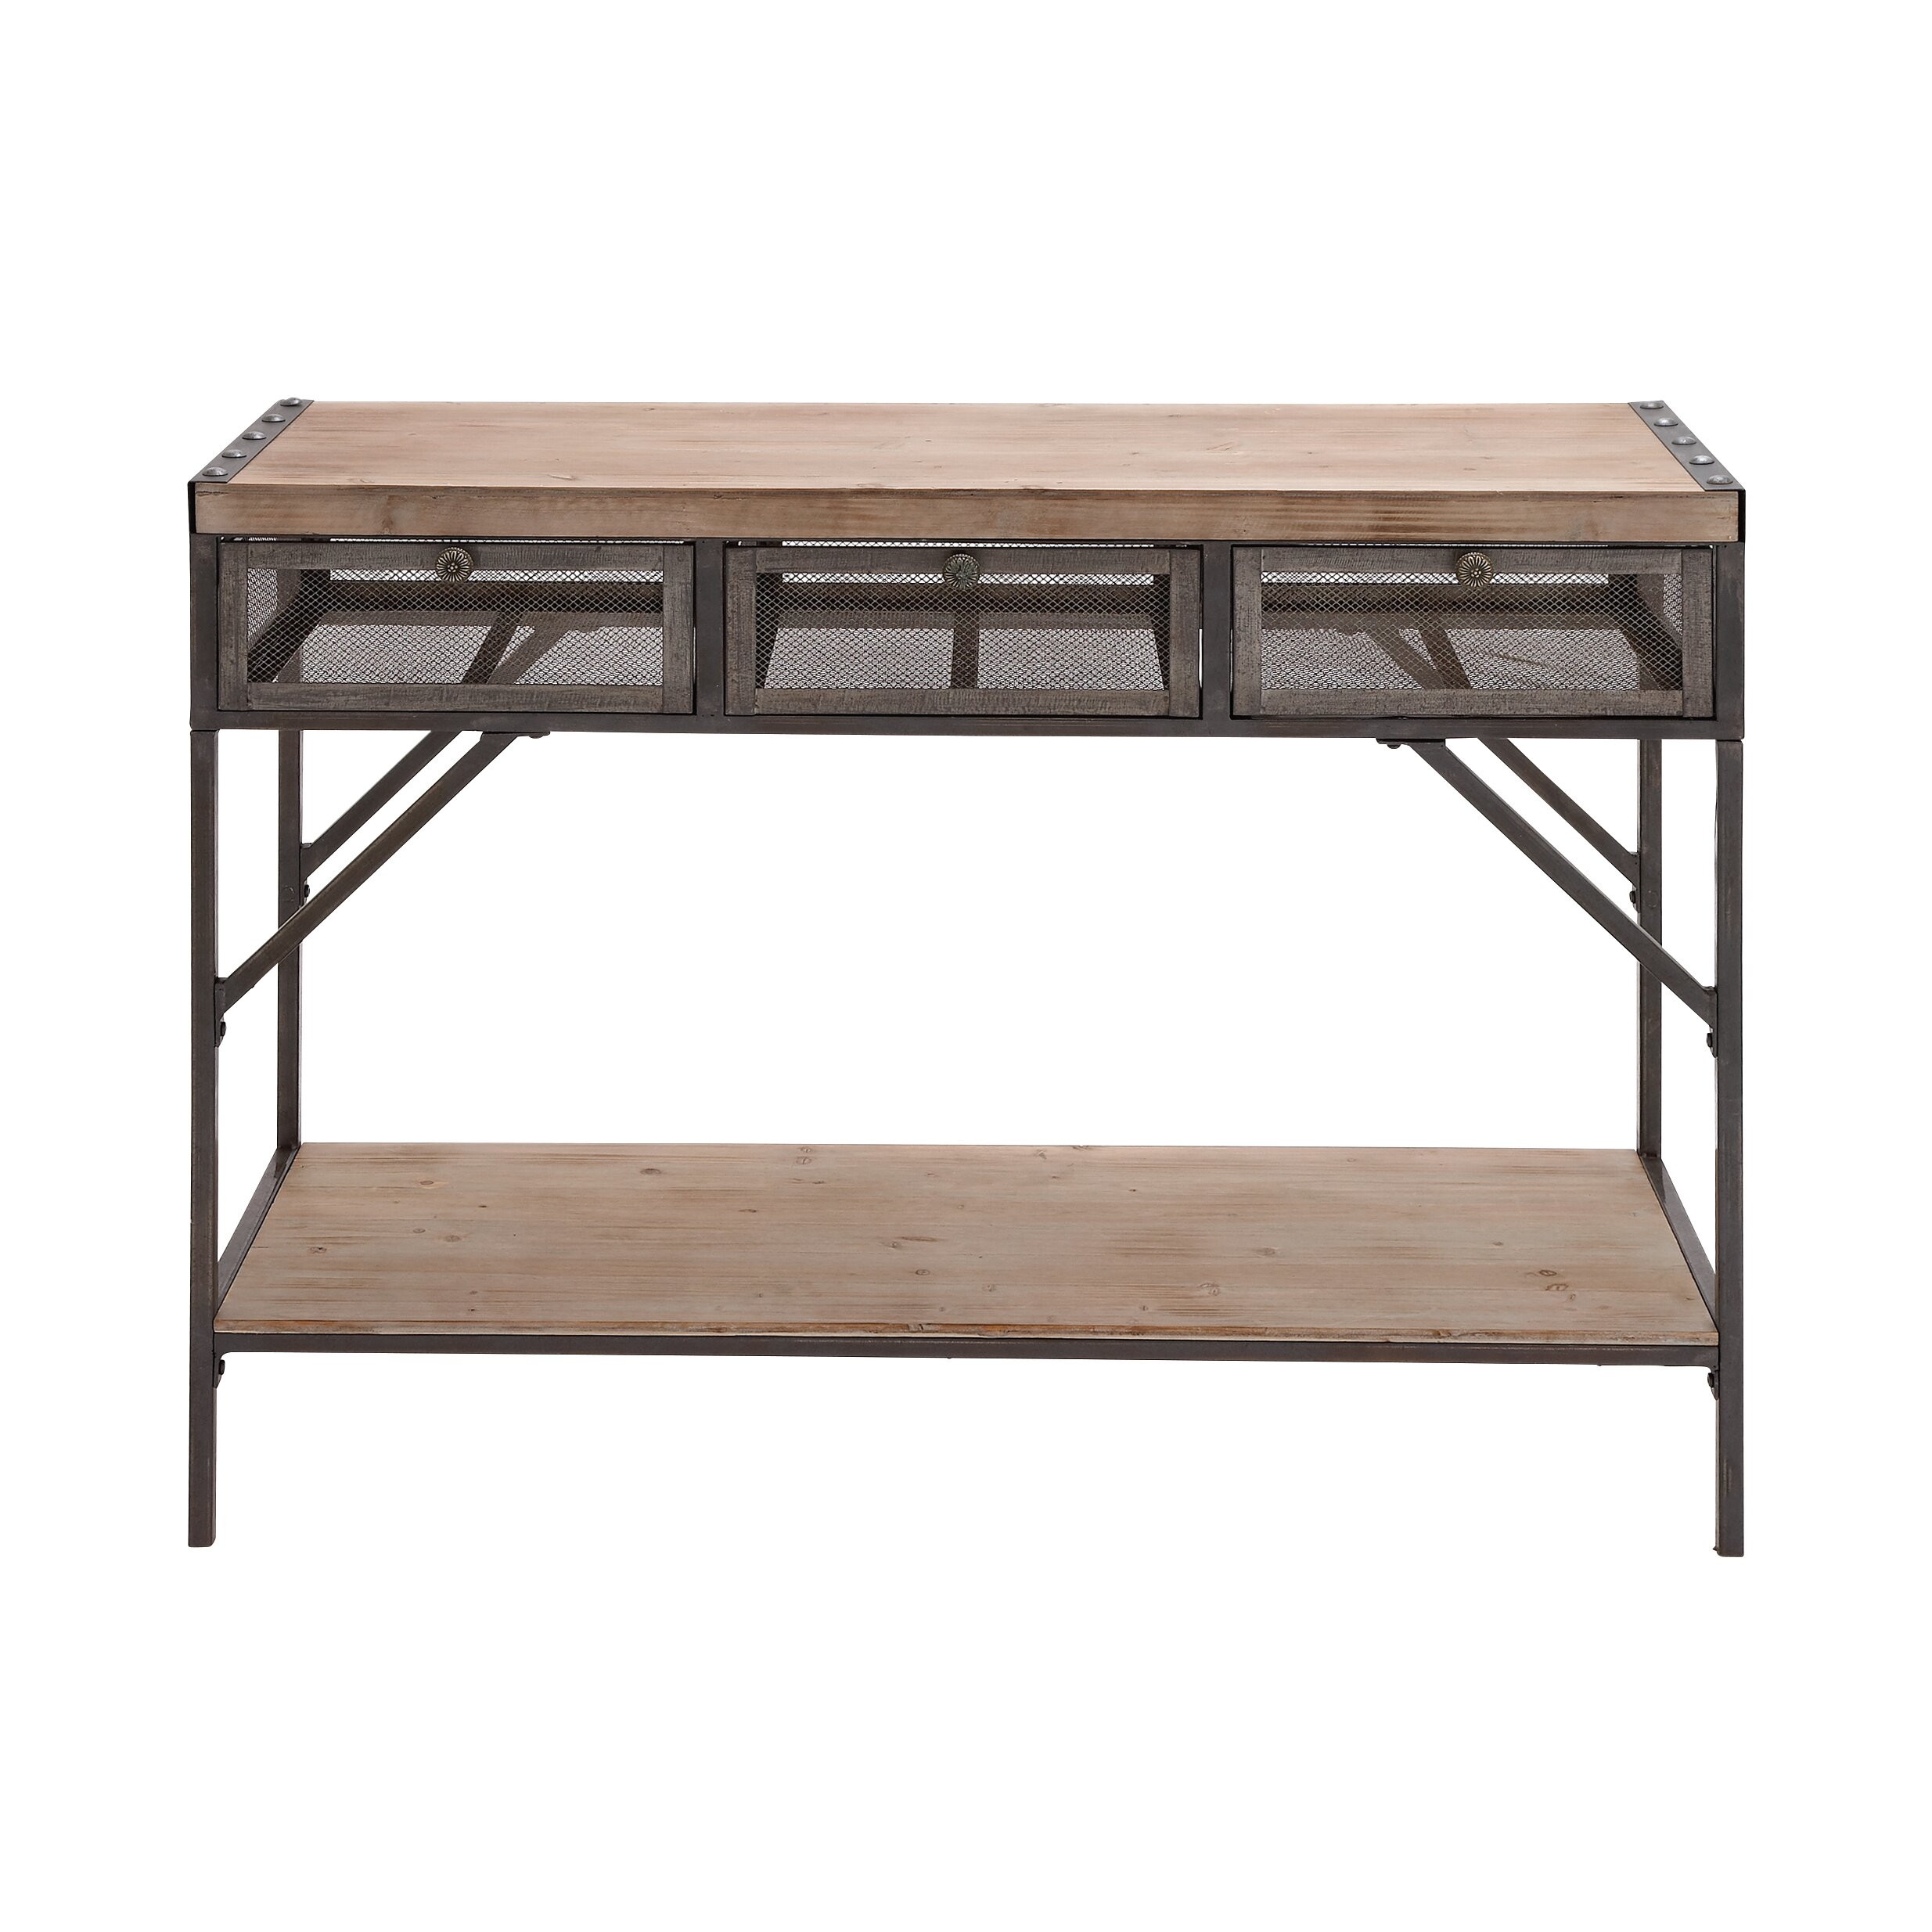 ... Imports Perfect Wood & Metal Console Table & Reviews  Wayfair